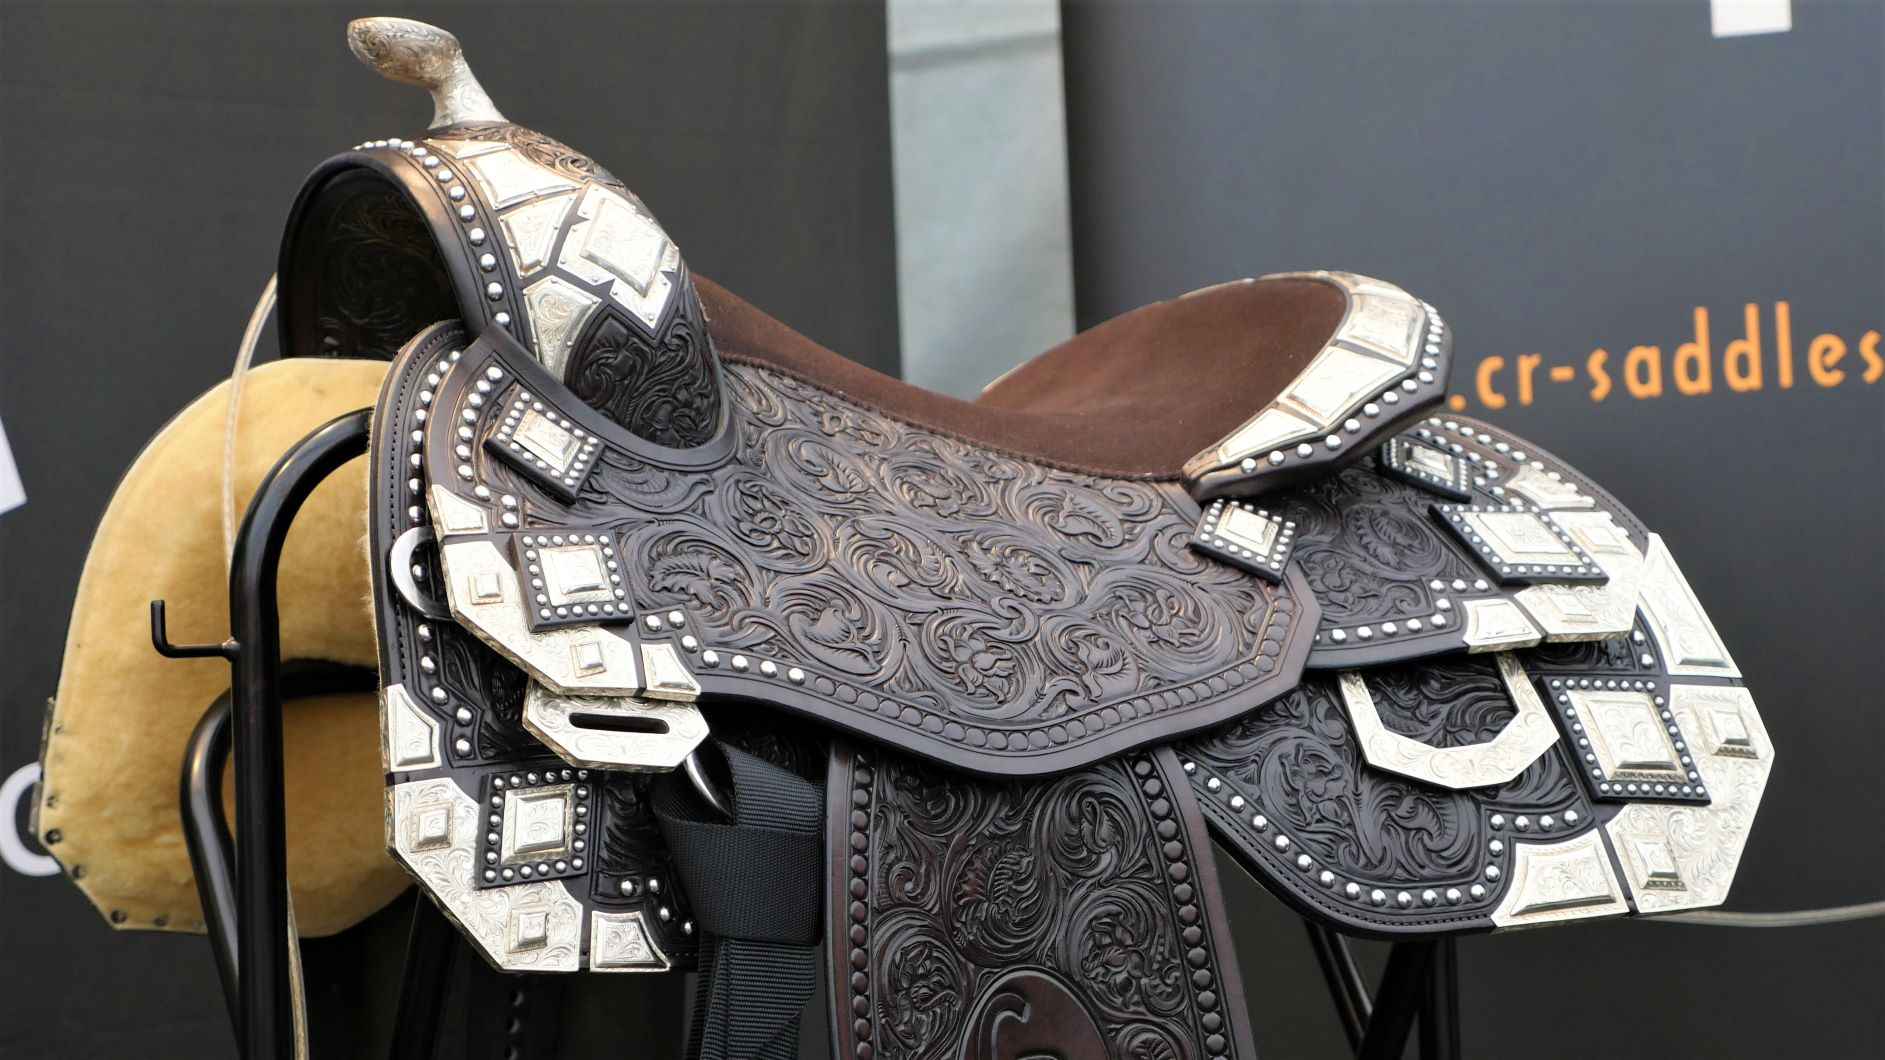 What makes a good western saddle?